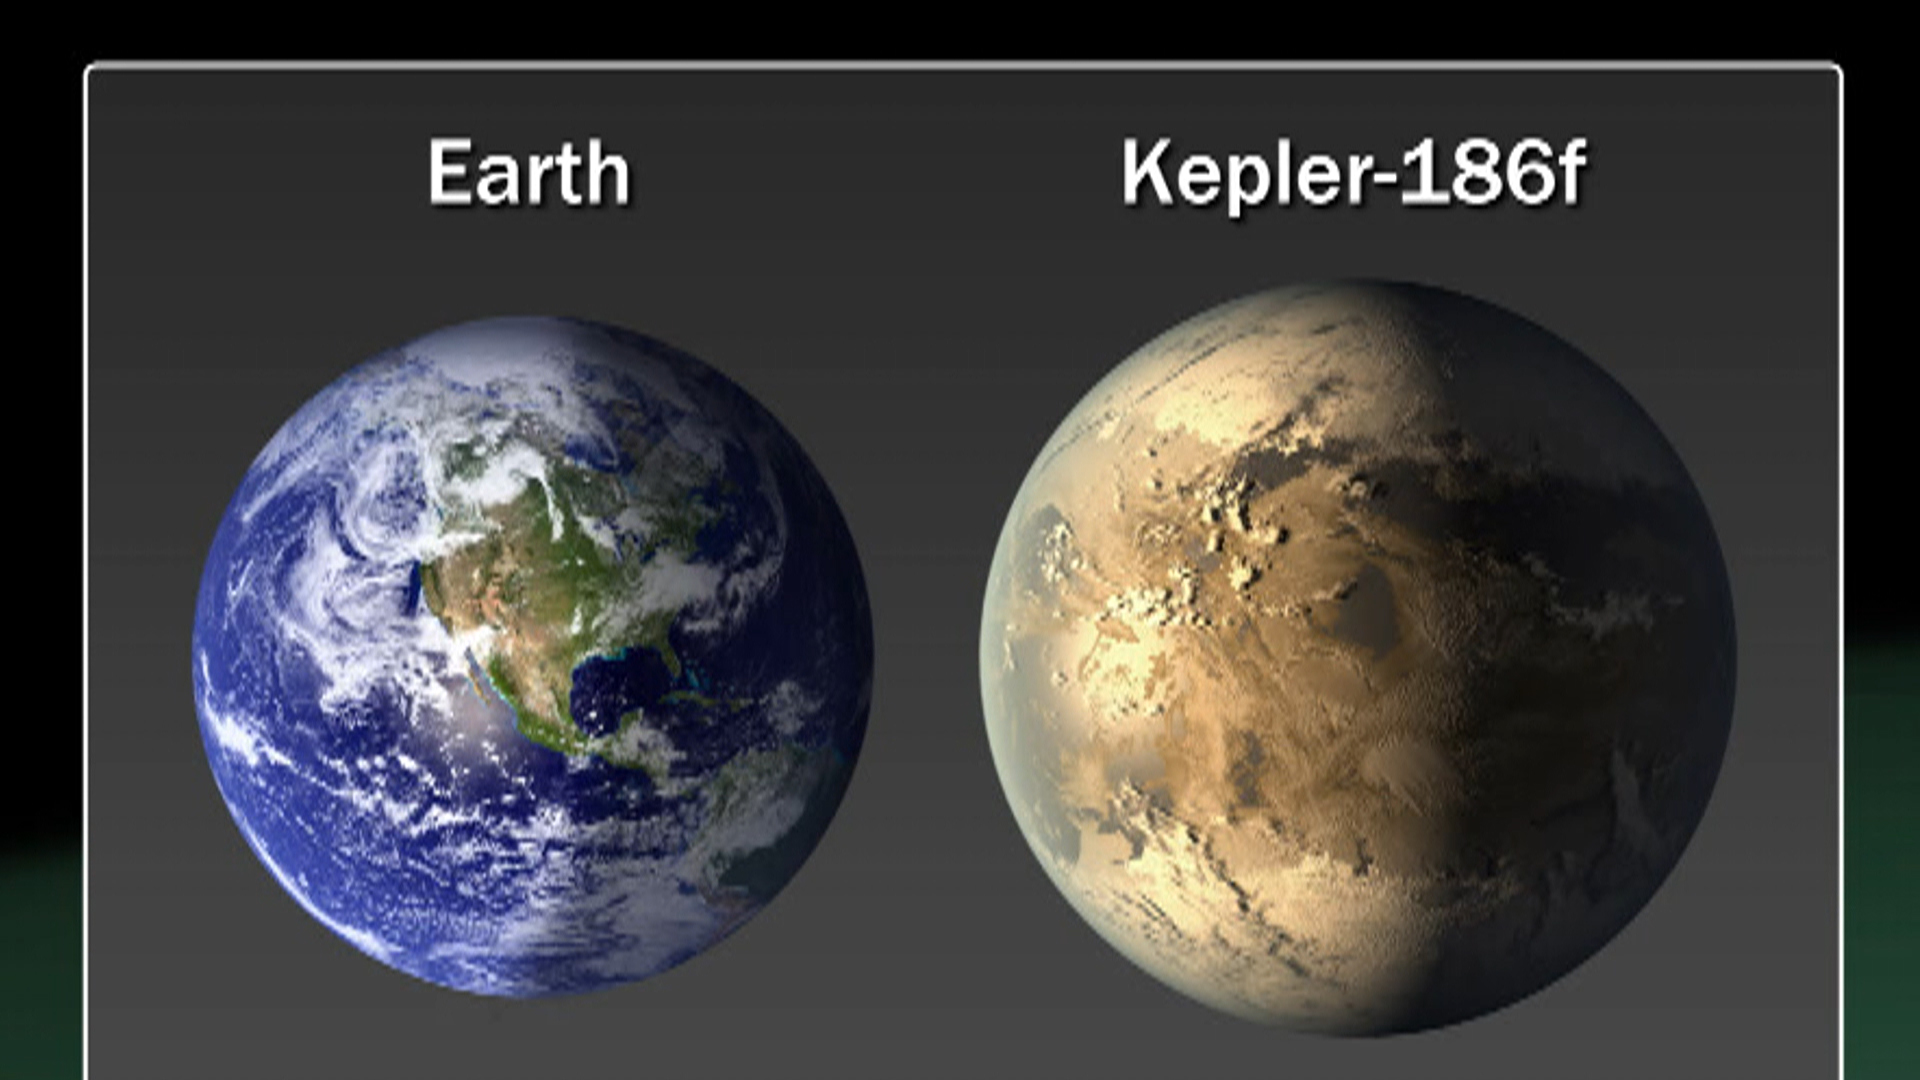 planets and moons similar to earth - photo #20